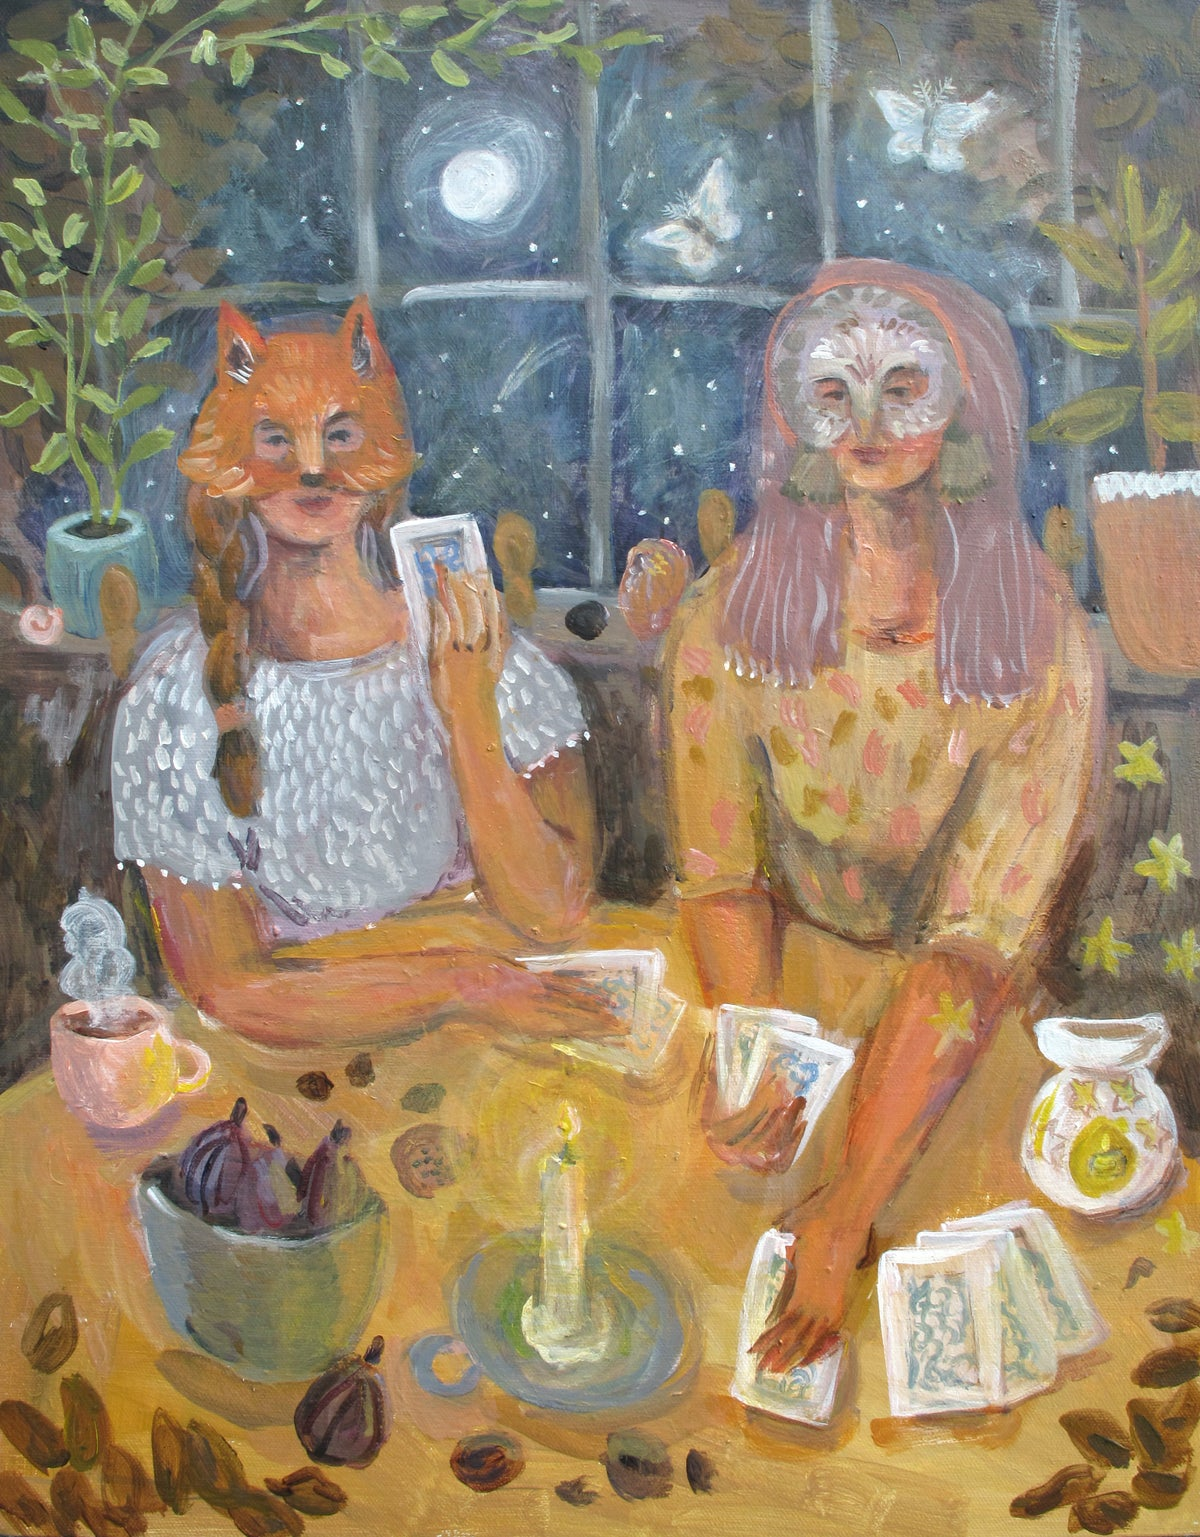 Image of Lady Fox and Sister Owl | 16x20 Original acrylic on canvas